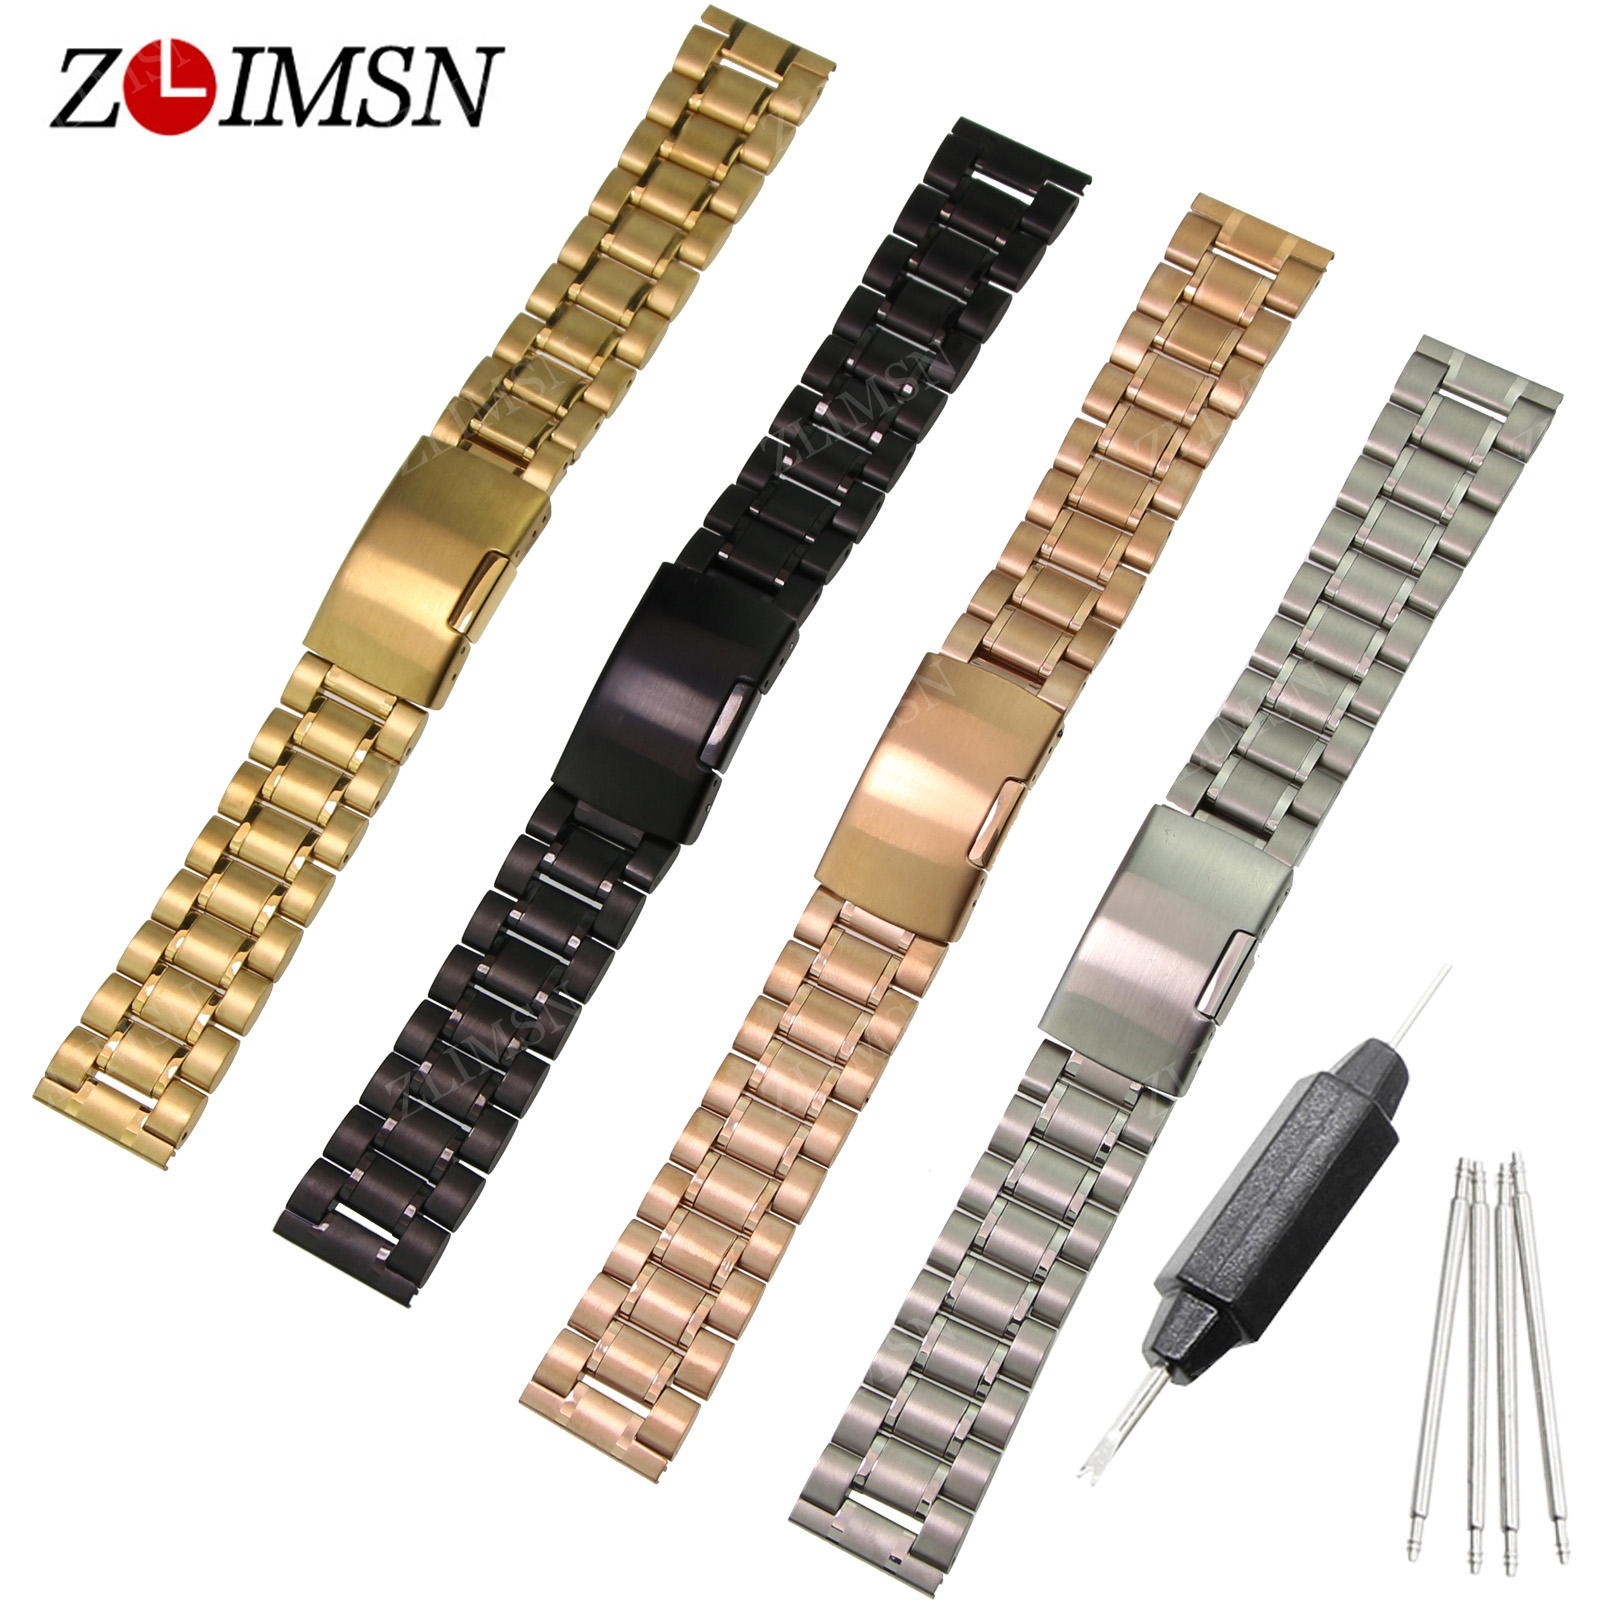 ZLIMSN Stainless Steel Watchband Deployment Clasp Silver Black Gold Watch Strap 18 20 22 24 26mm Brazalete De Acero Inoxidable pro table tennis pingpong combo racket galaxy yinhe t 6 blade with 2x dhs neo hurricane3 rubbers